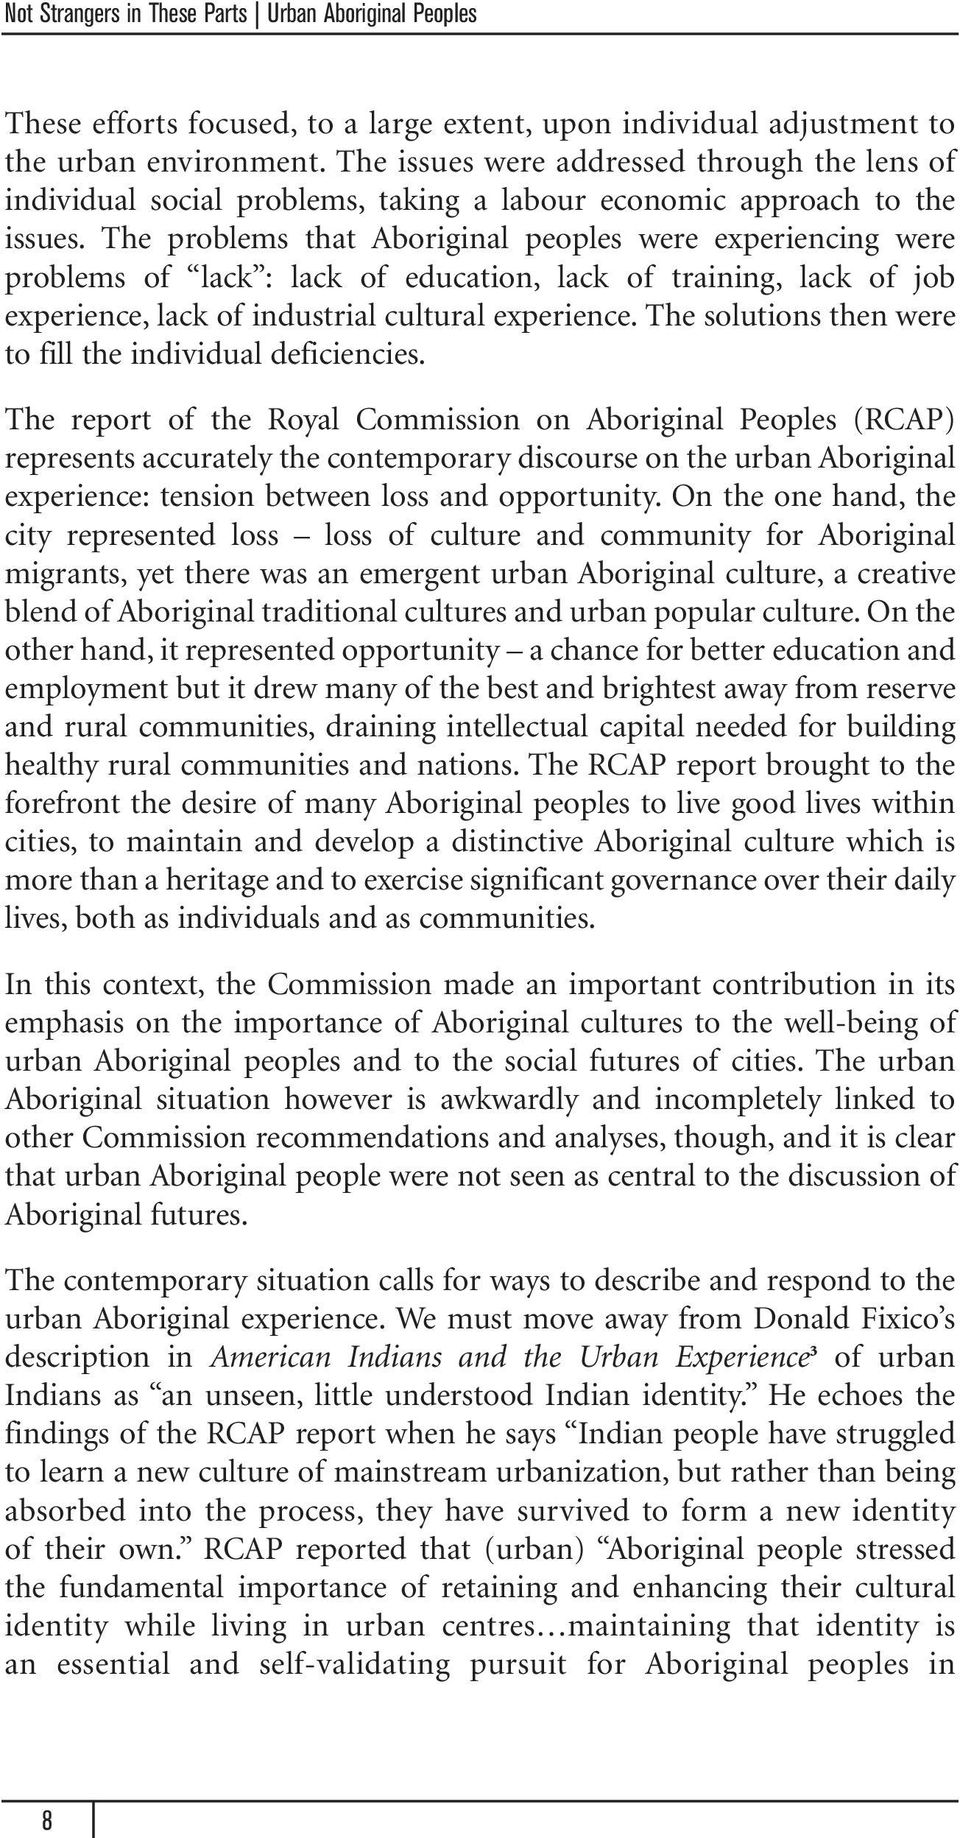 The problems that Aboriginal peoples were experiencing were problems of lack : lack of education, lack of training, lack of job experience, lack of industrial cultural experience.